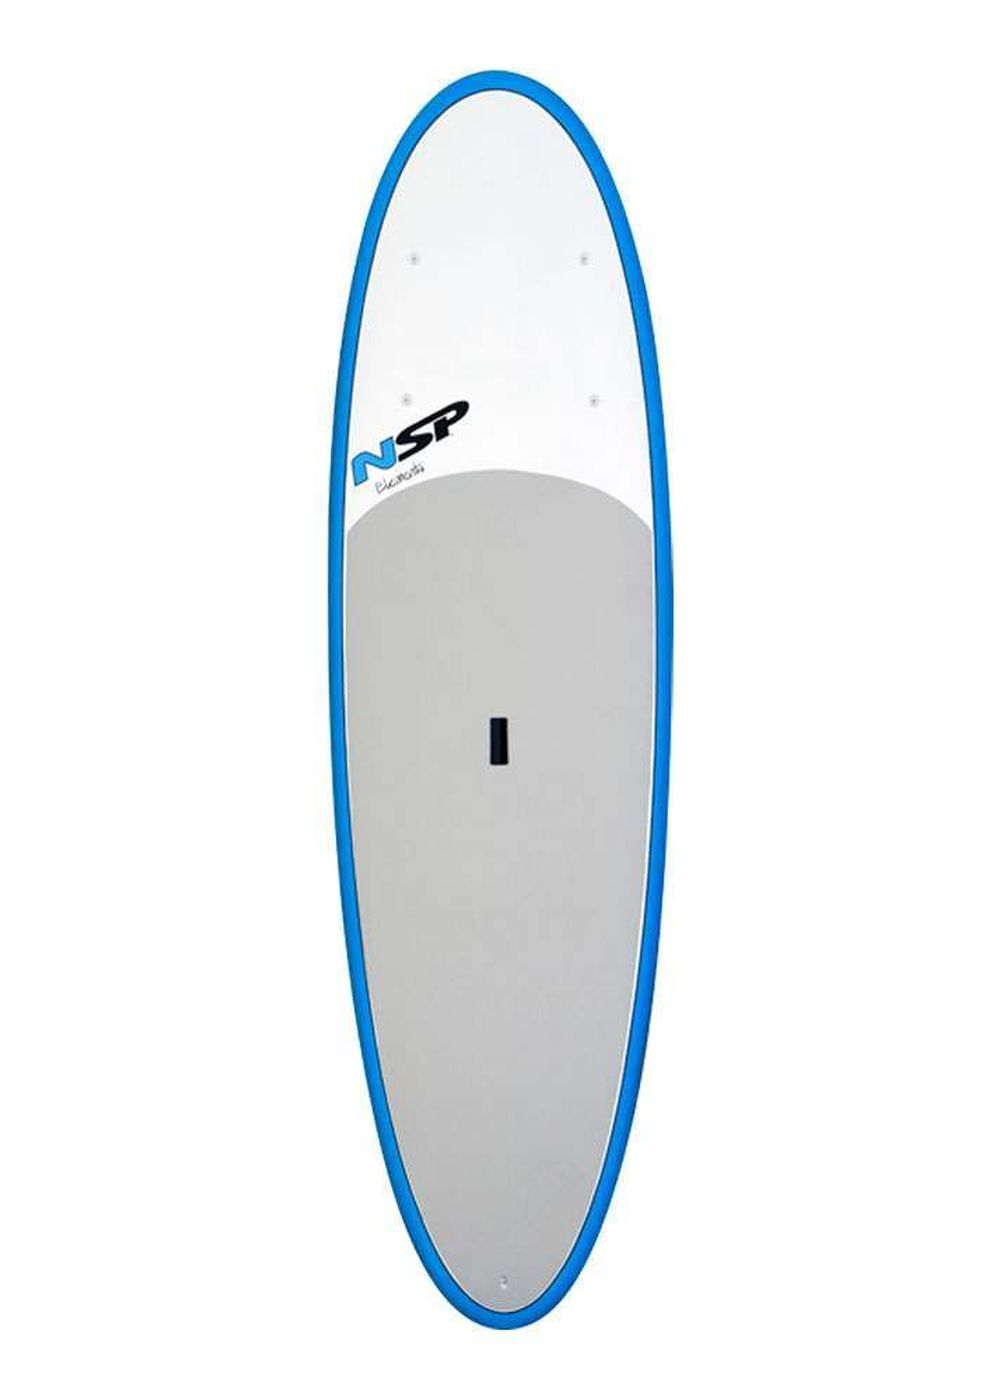 NSP ELEMENTS STAND UP PADDLEBOARD 9FT 8 Blue